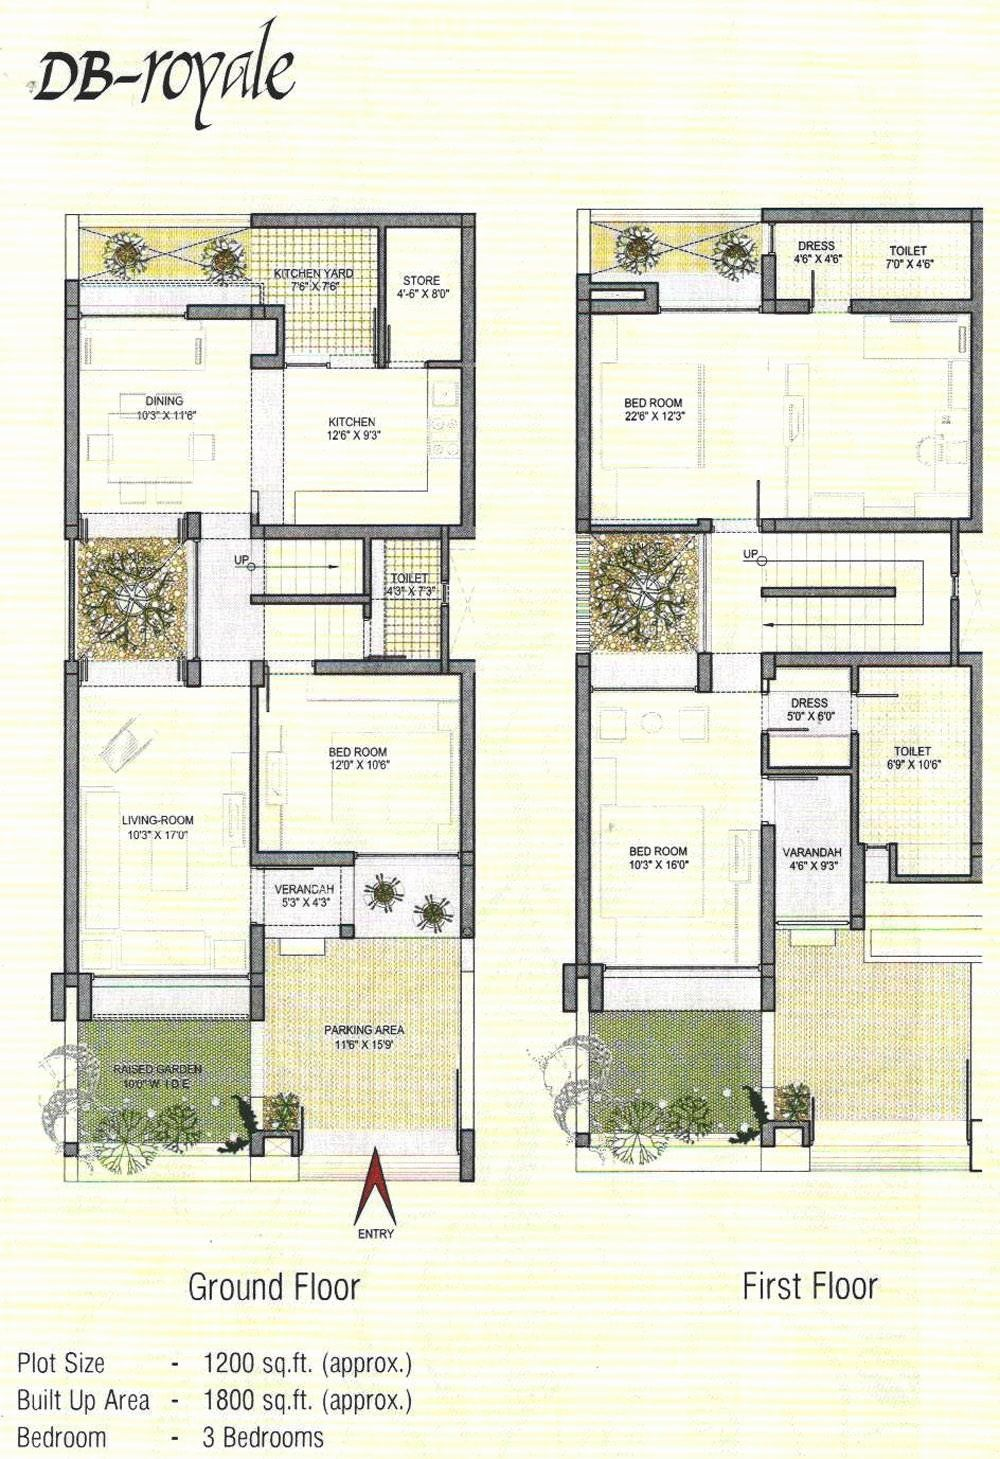 Contemporary Duplex House Plans Beautiful 54 Fresh Duplex House Designs 1200 Sq Ft Stock Daftar Ev Duplex House Plans Indian House Plans Modern House Plans